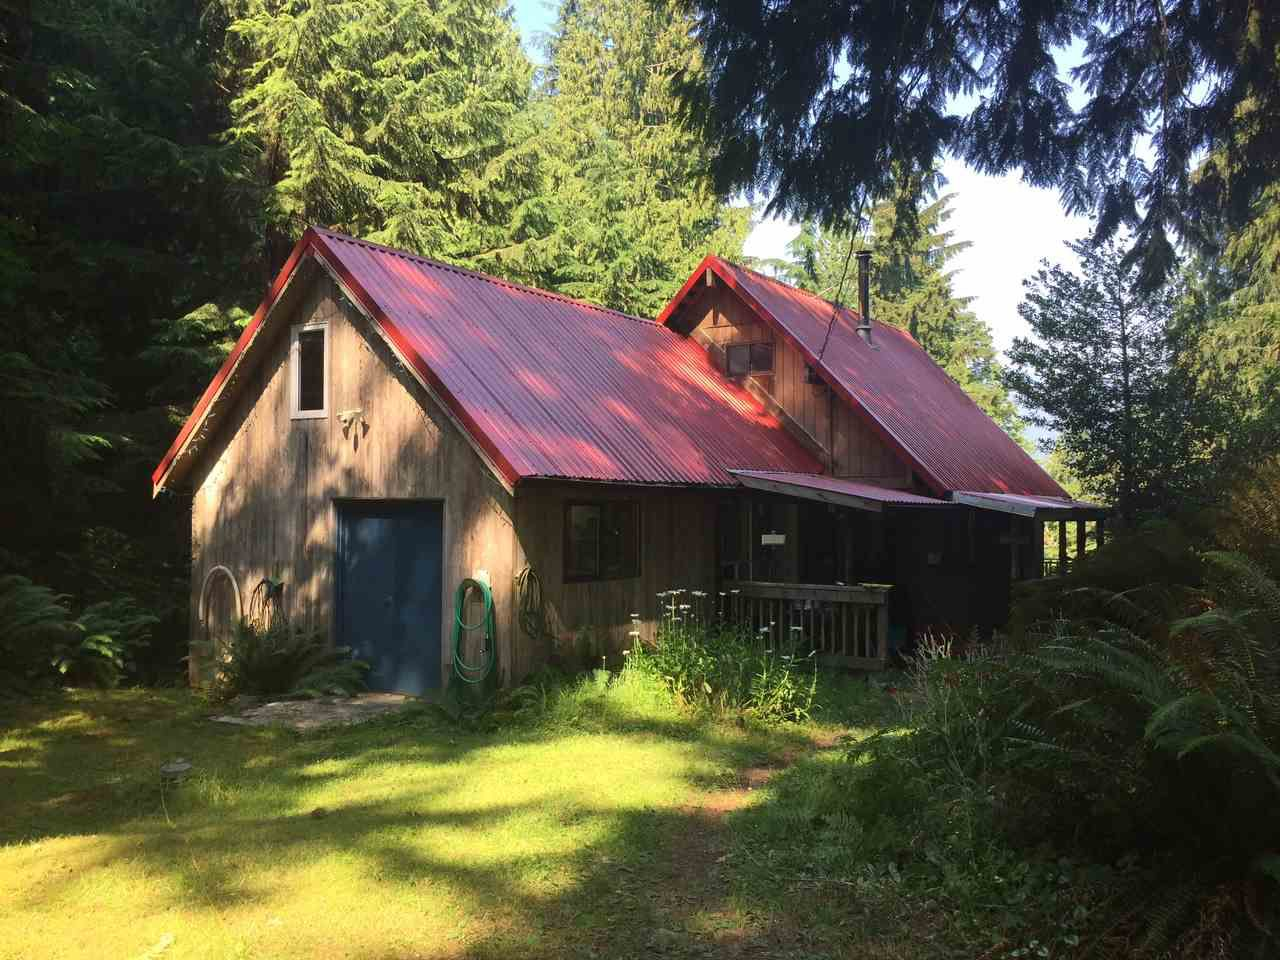 Main Photo: 545 SHAWANABE Road: Gambier Island House for sale (Sunshine Coast)  : MLS®# R2190602